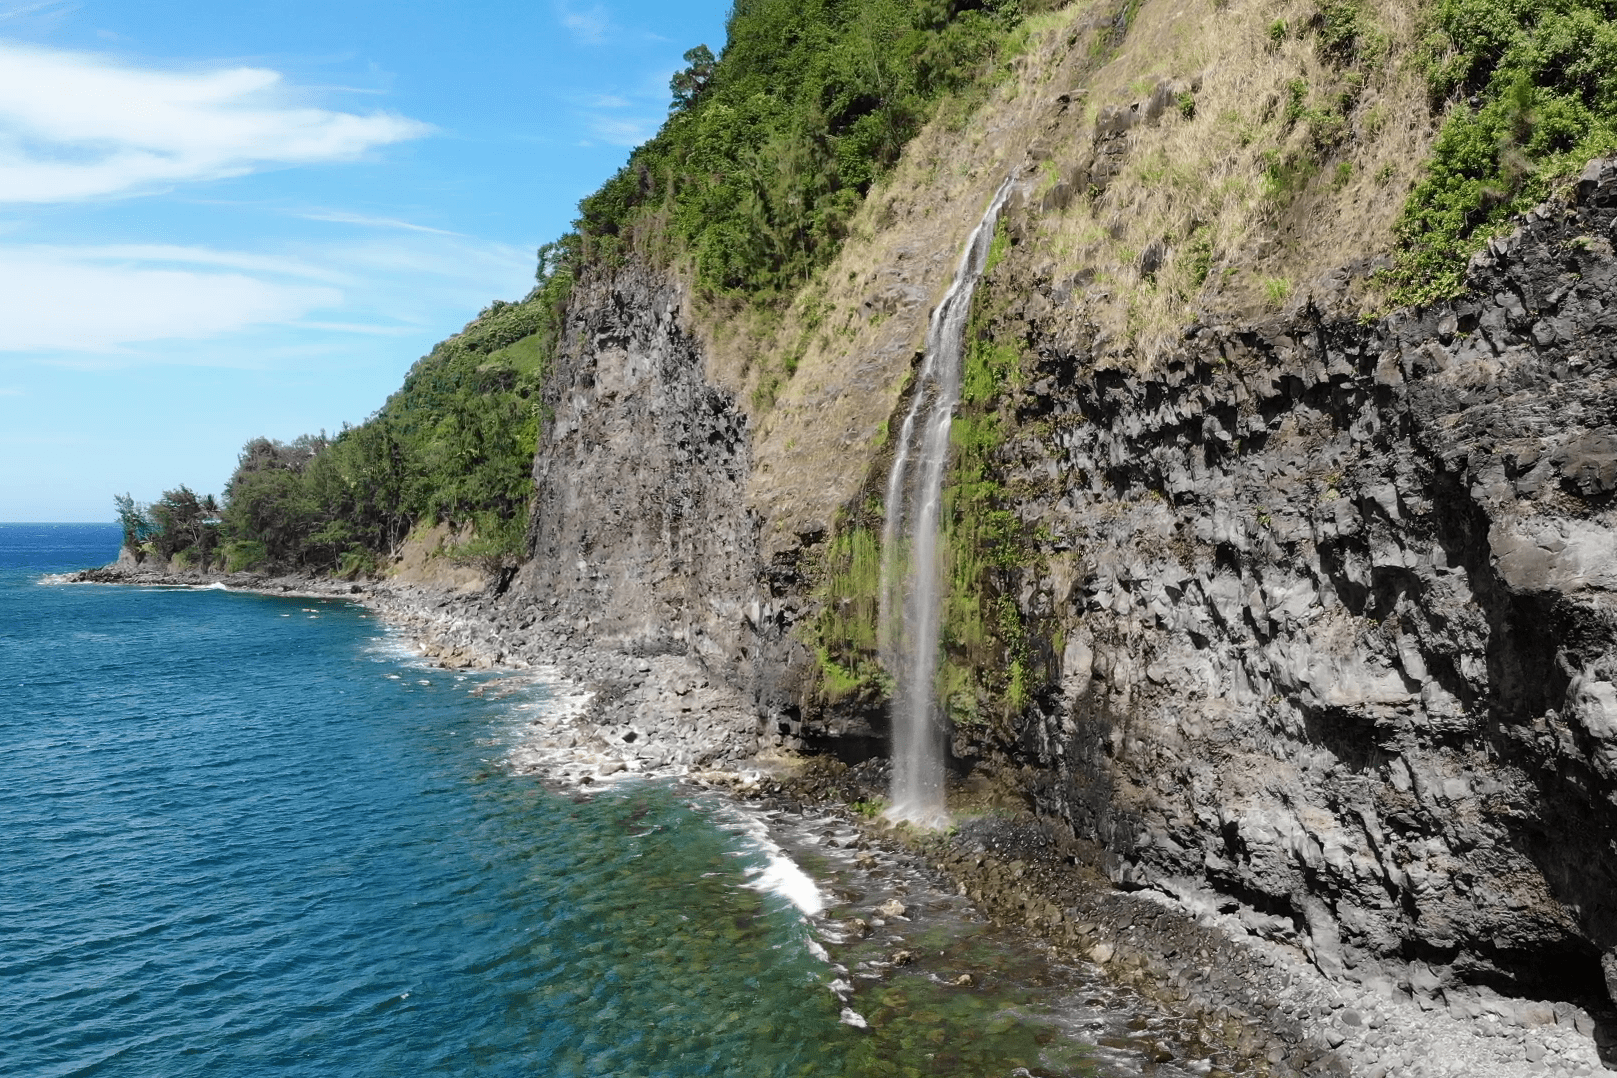 The tough climb to Kila Falls likely means you